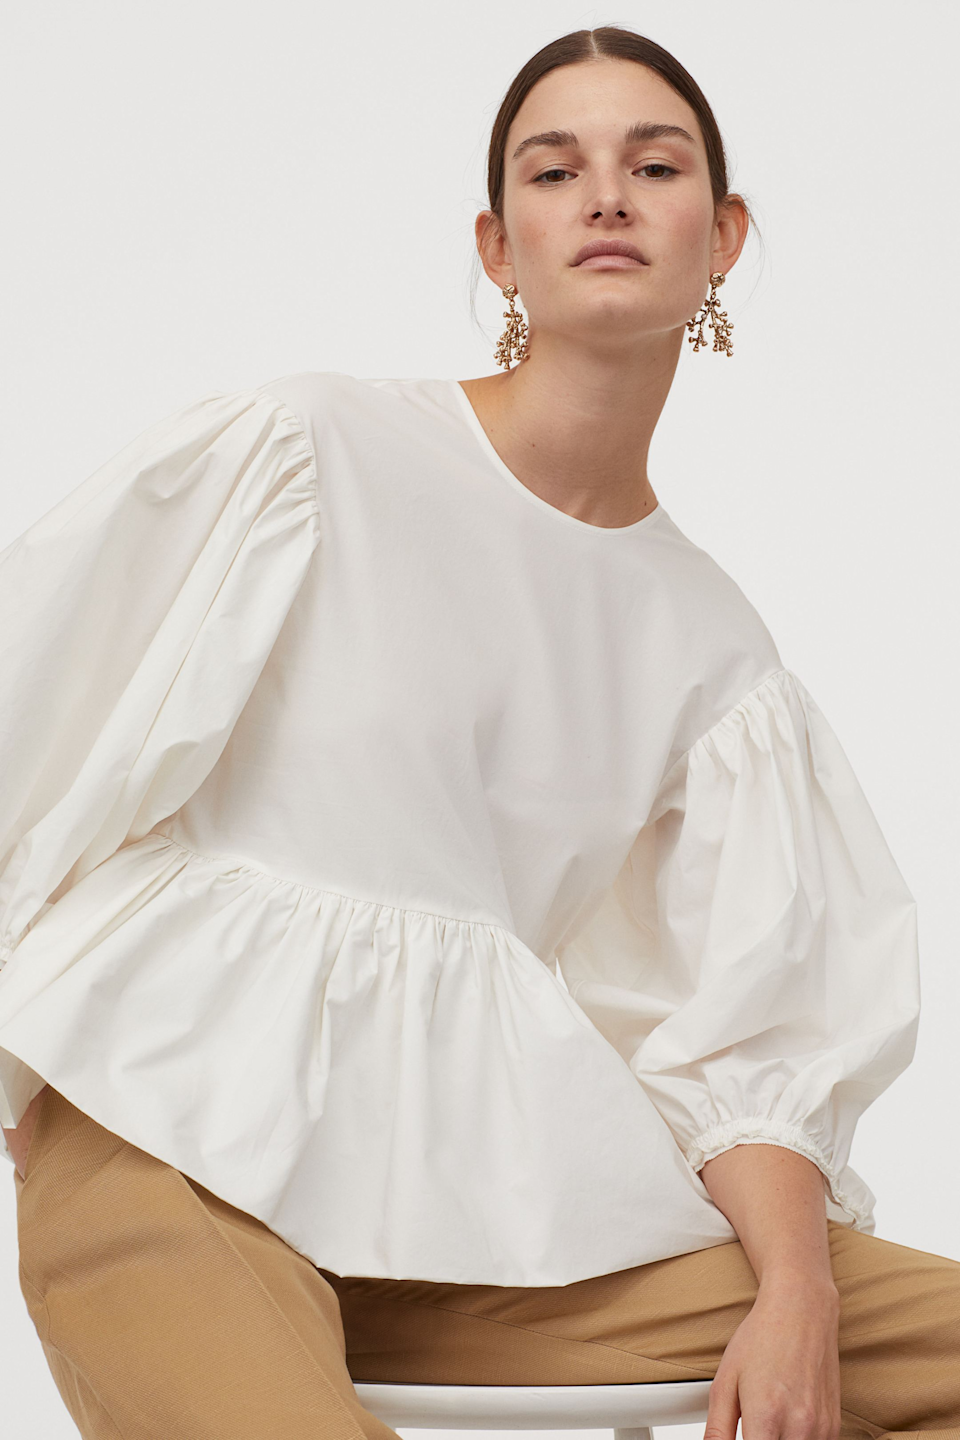 "Not only will your mom look 10/10 in this white, puff-sleeved blouse, she can also rest easy knowing that it's 100% cotton and part of H&M's Conscious Exclusive collection. <br> <br> <strong>H&M</strong> Cotton Balloon-Sleeved Blouse, $, available at <a href=""https://go.skimresources.com/?id=30283X879131&url=https%3A%2F%2Fwww2.hm.com%2Fen_us%2Fproductpage.0870956001.html"" rel=""nofollow noopener"" target=""_blank"" data-ylk=""slk:H&M"" class=""link rapid-noclick-resp"">H&M</a>"